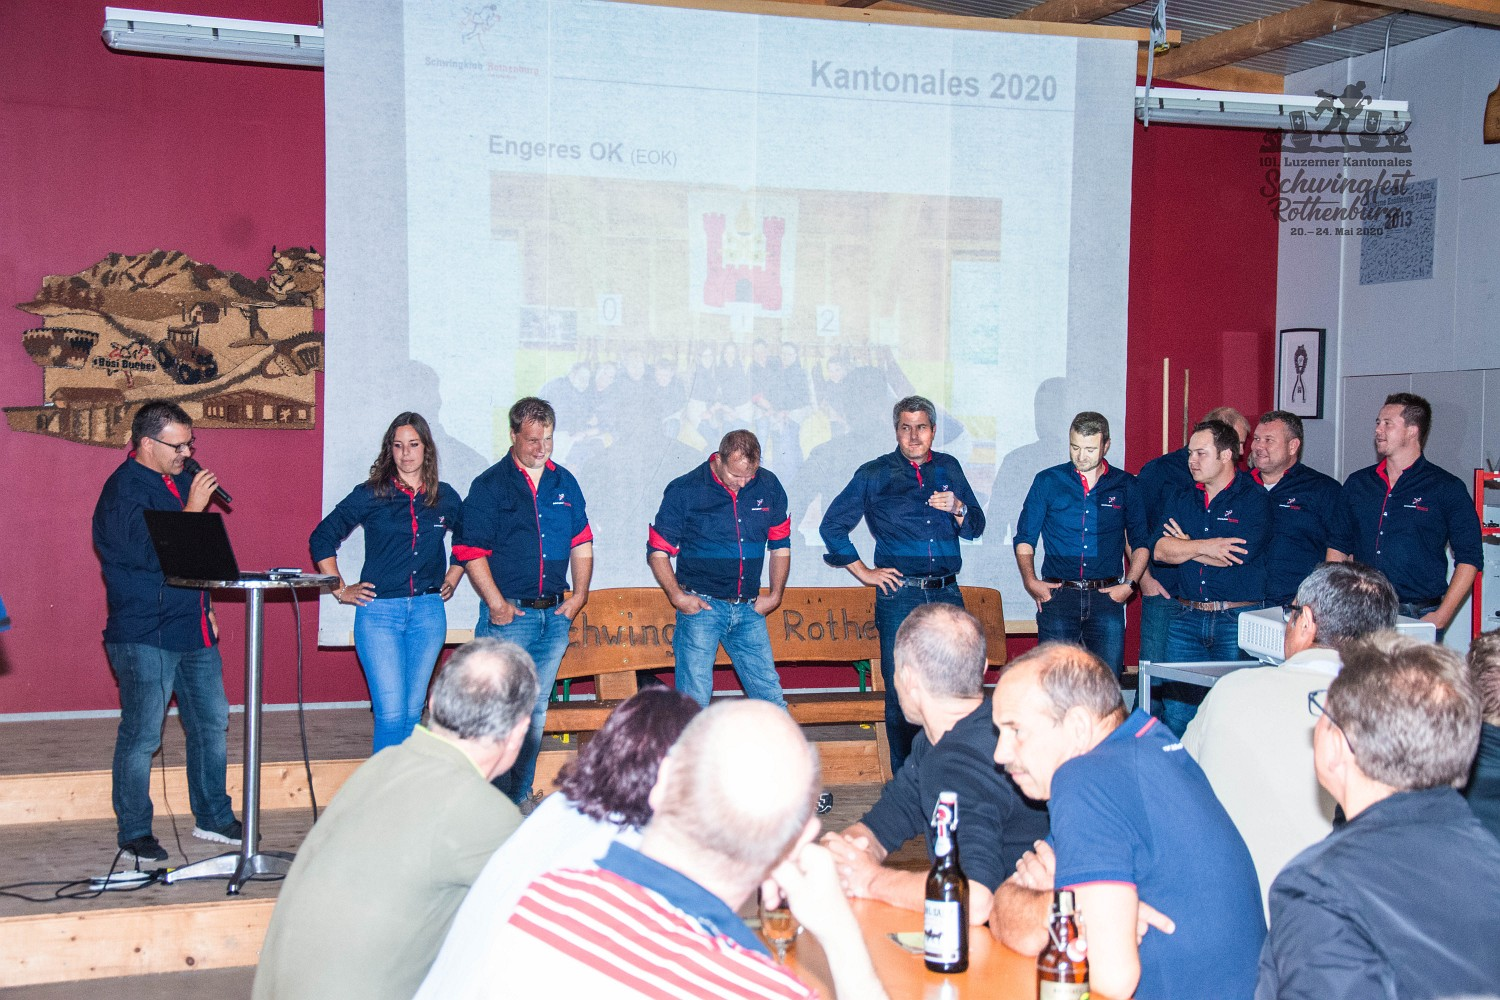 101. Luzerner Kantonale Schwingfest 2020 in Rothenburg, Kick-Off